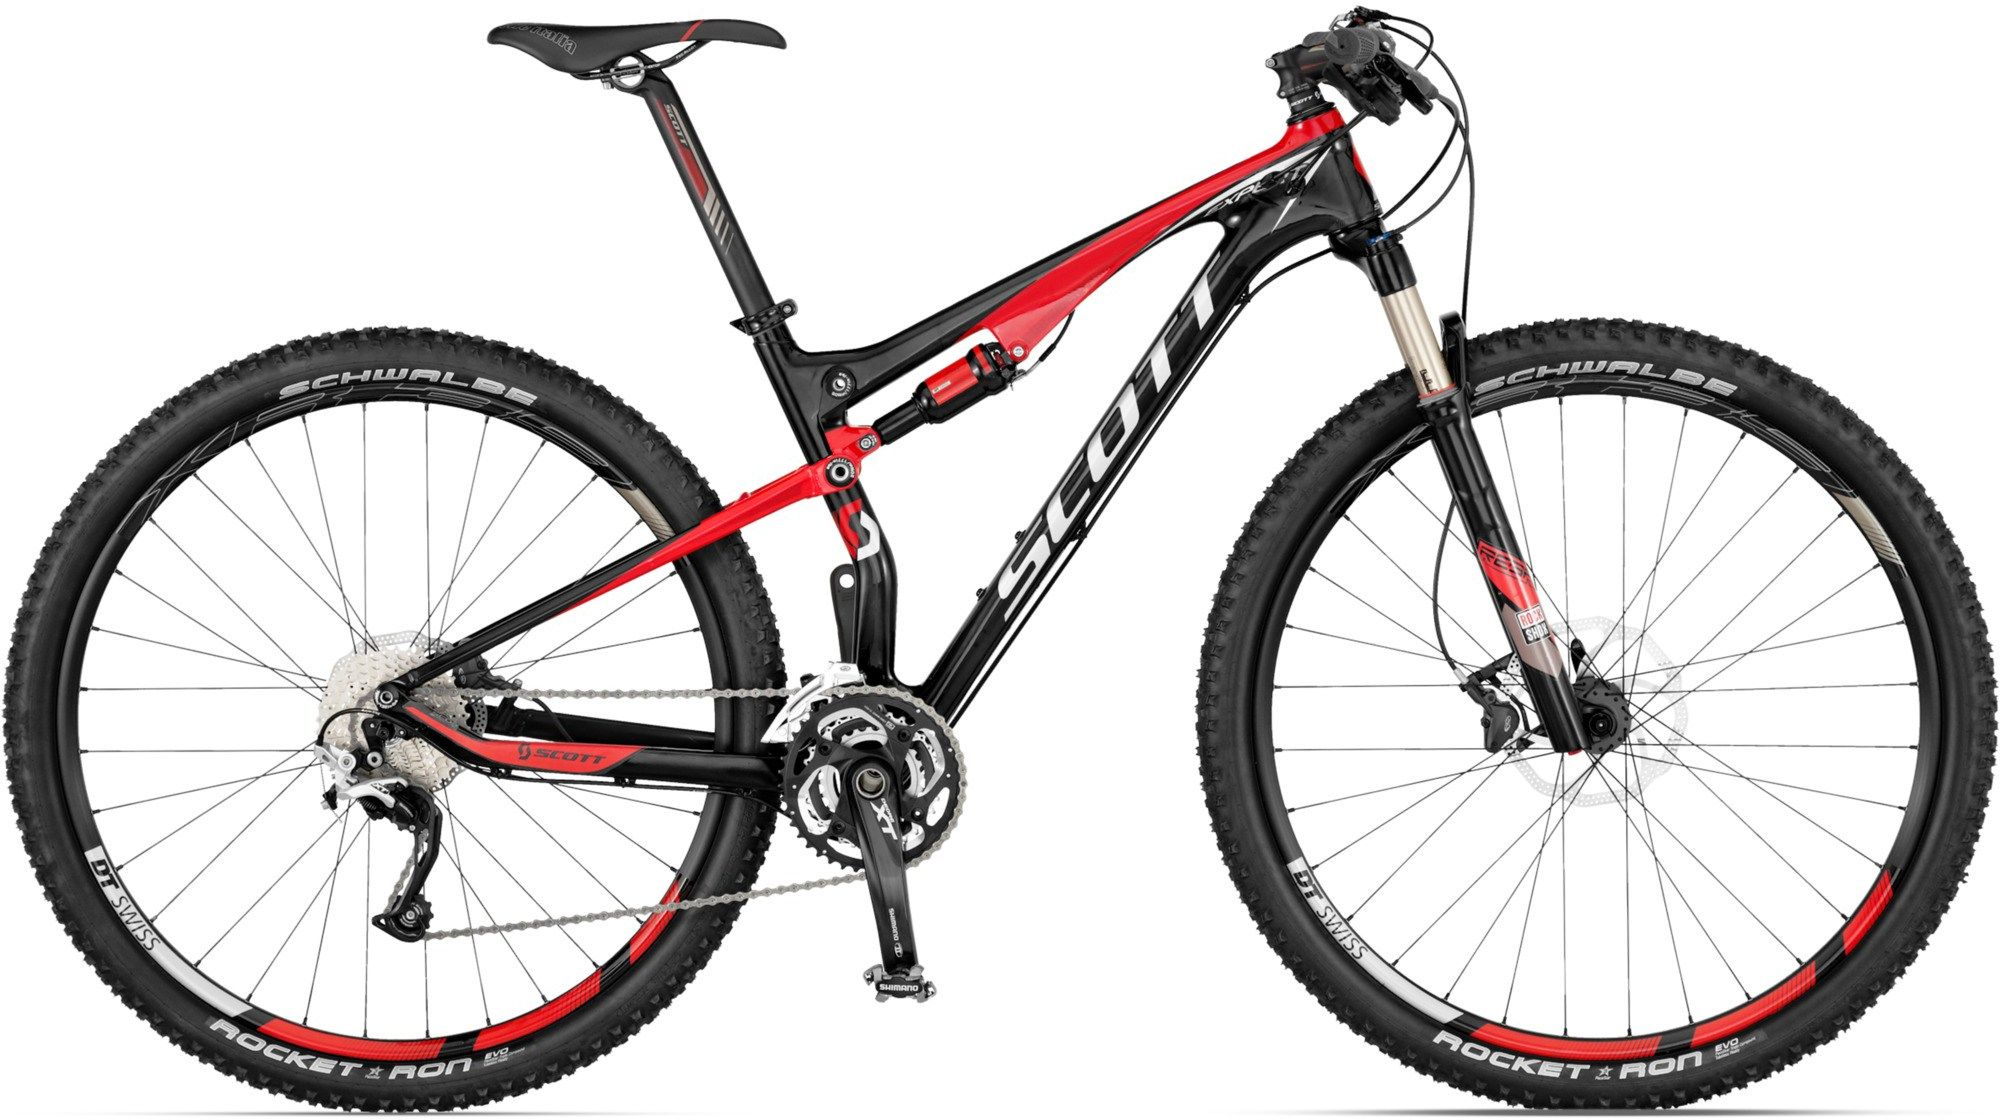 Scott Spark 29er Expert carbon full-suspension mountain bike $3469